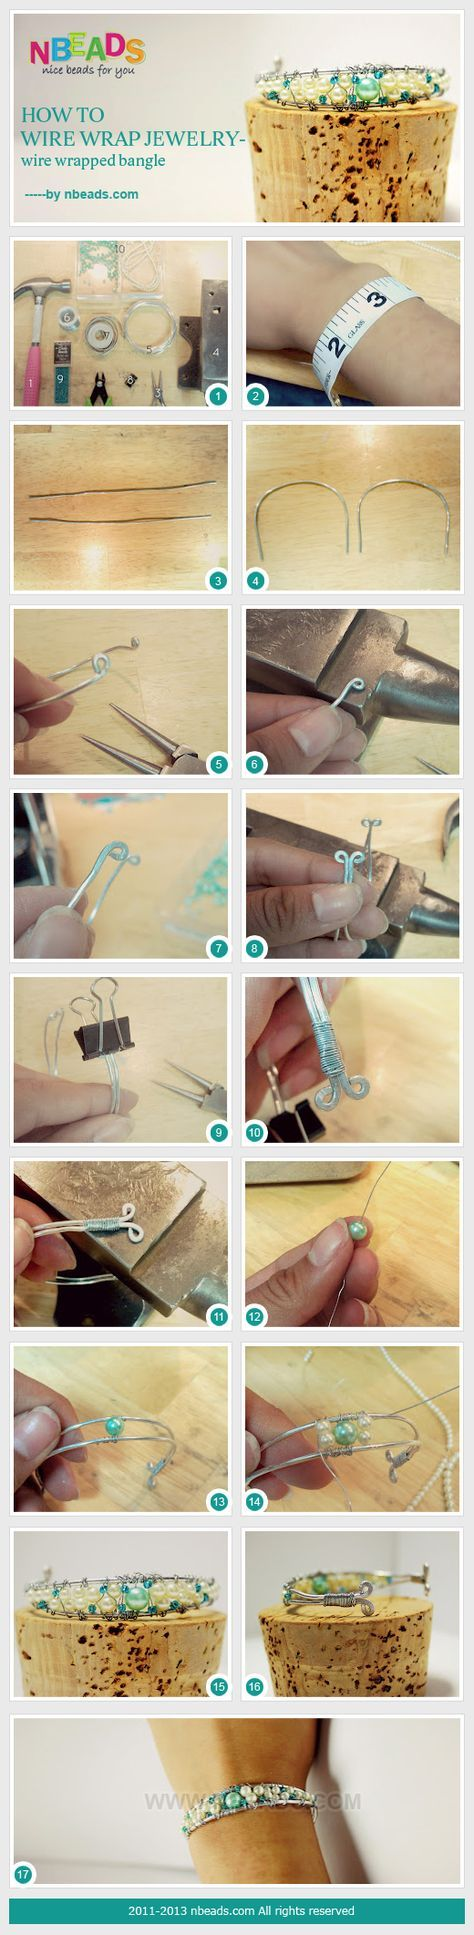 how to wire wrap jewelry-wire wrapped bangle